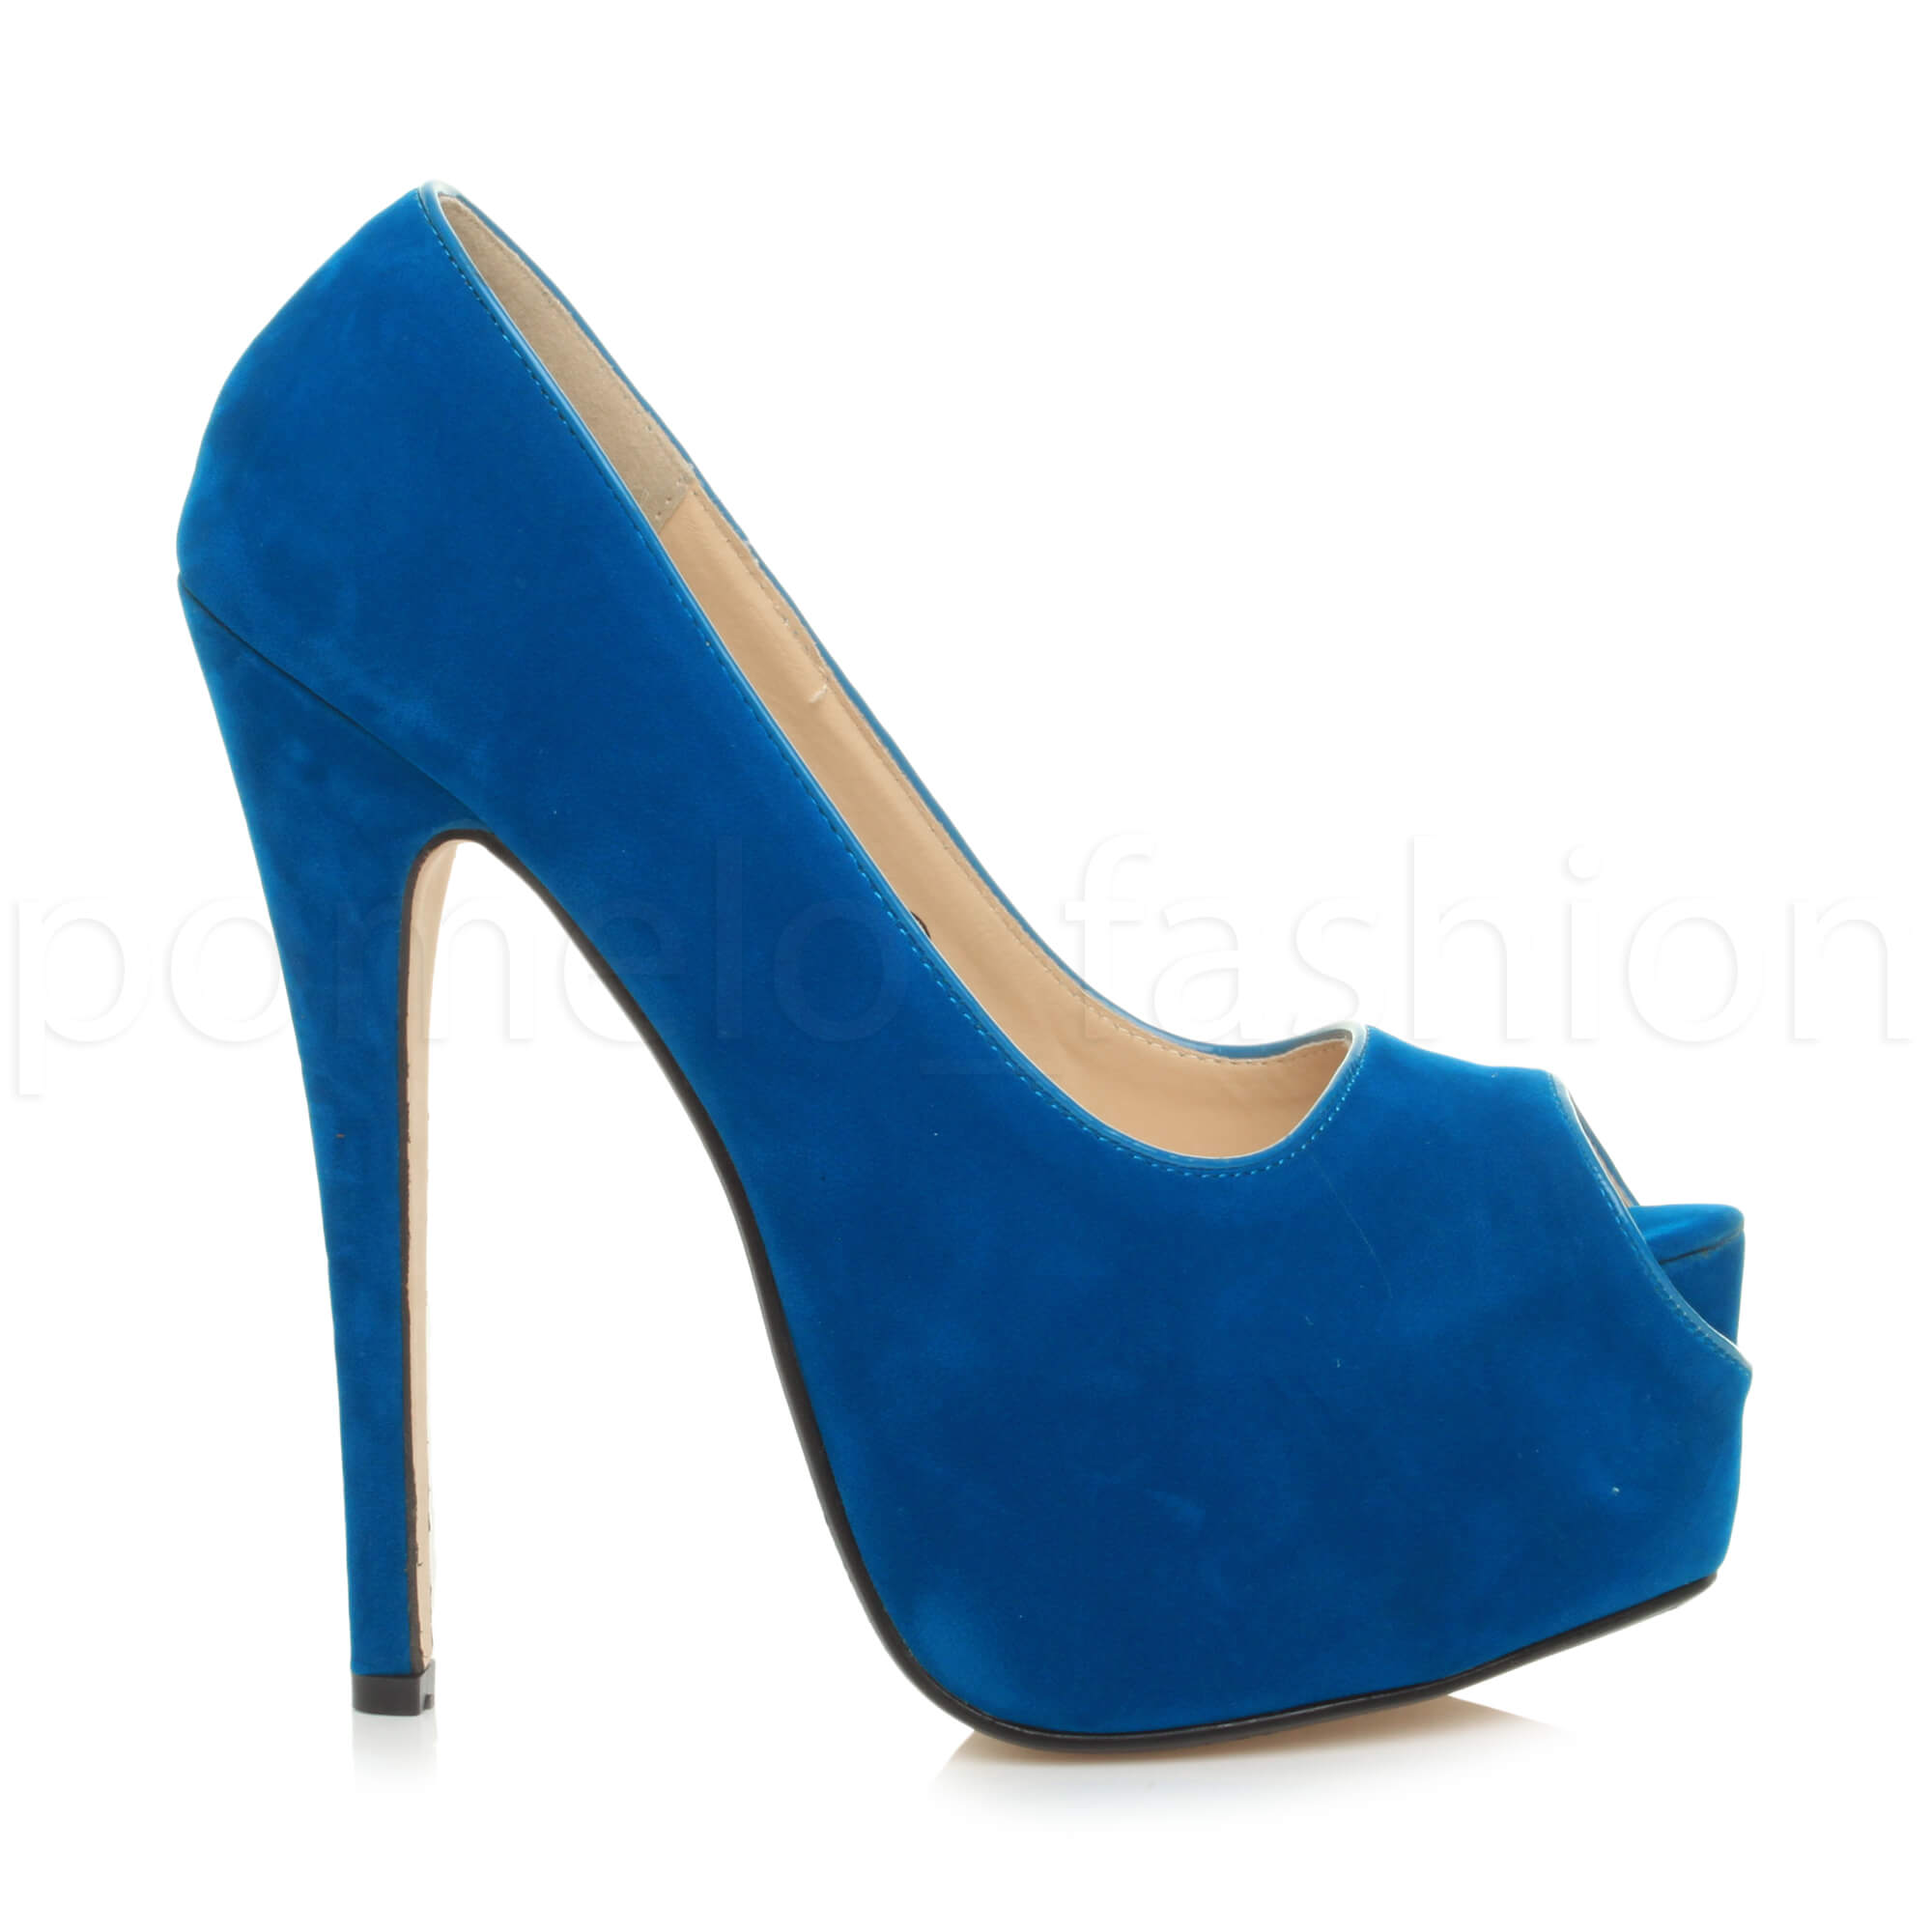 WOMENS-LADIES-HIGH-HEEL-PLATFORM-PARTY-PEEP-TOE-COURT-PUMPS-SHOES-SIZE